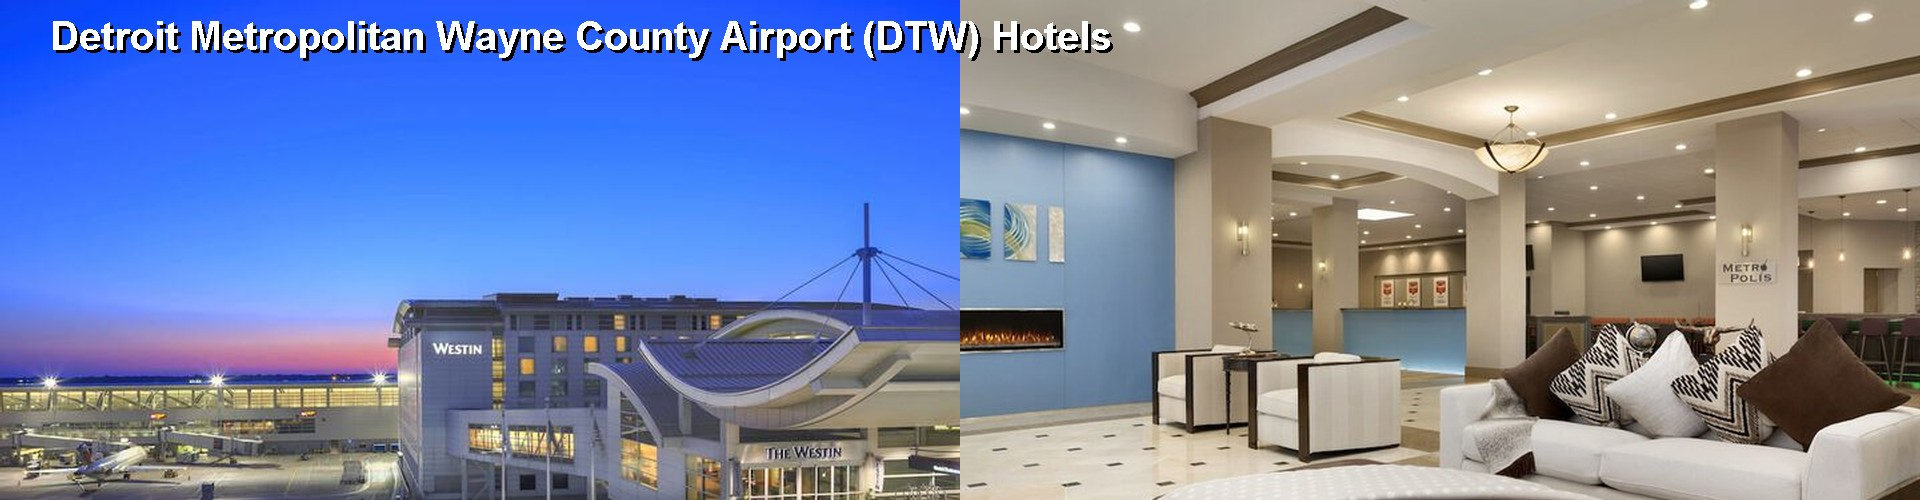 5 Best Hotels near Detroit Metropolitan Wayne County Airport (DTW)